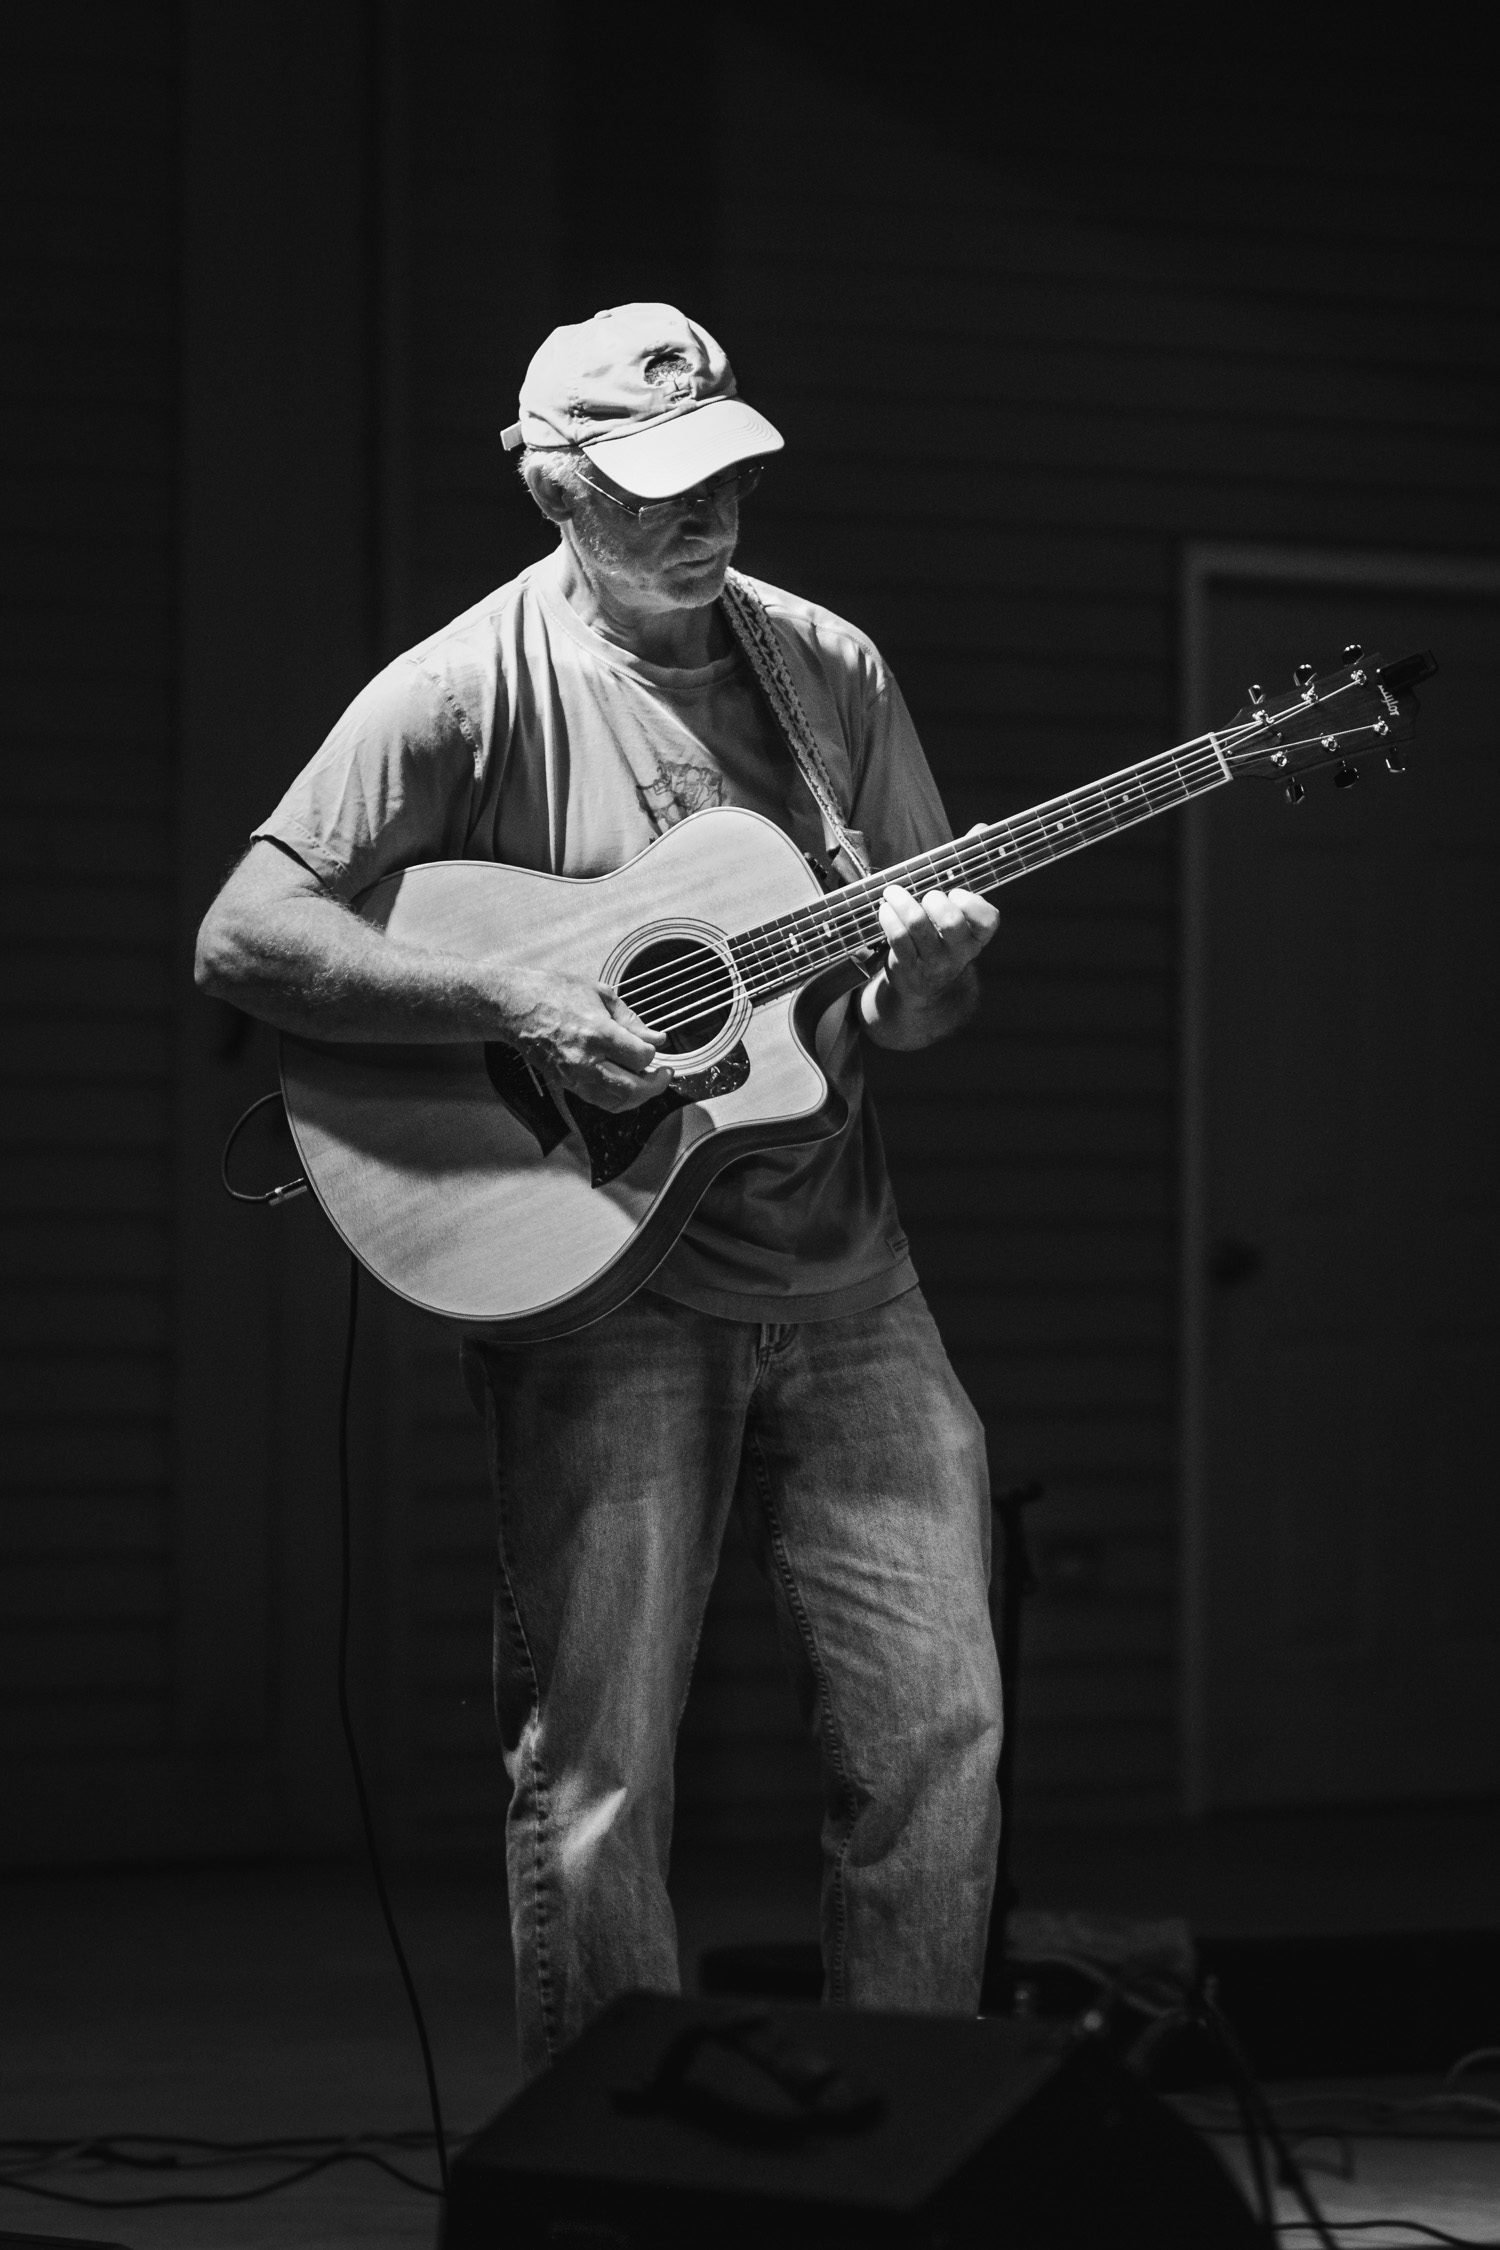 Anthony Cocca - Guitar